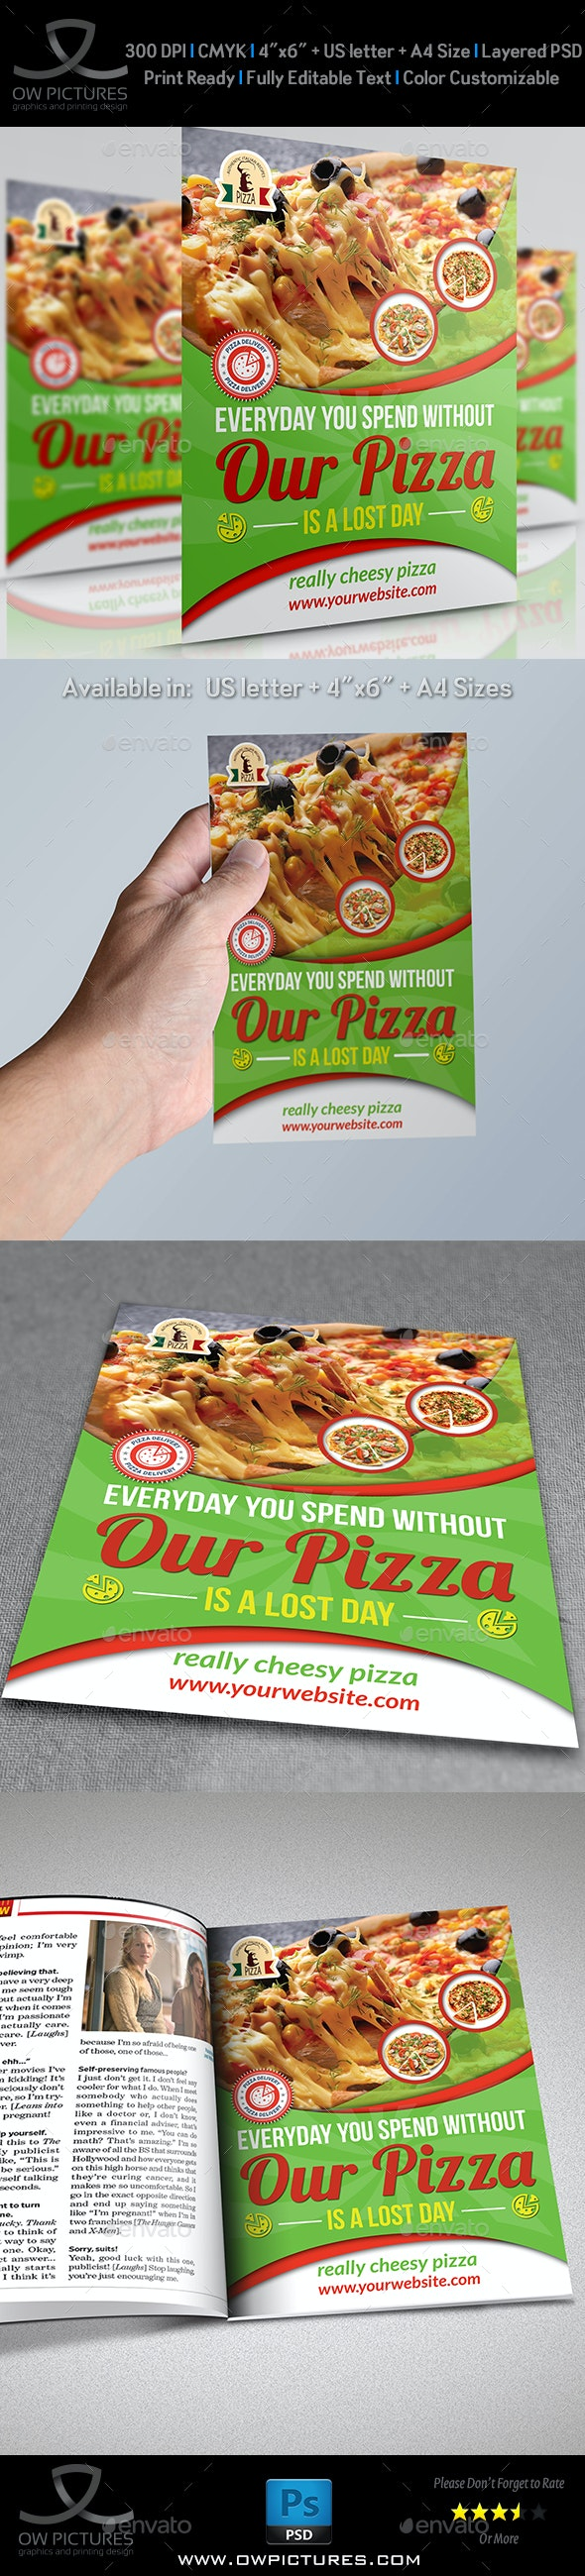 Pizza Restaurant Flyer Template - Restaurant Flyers